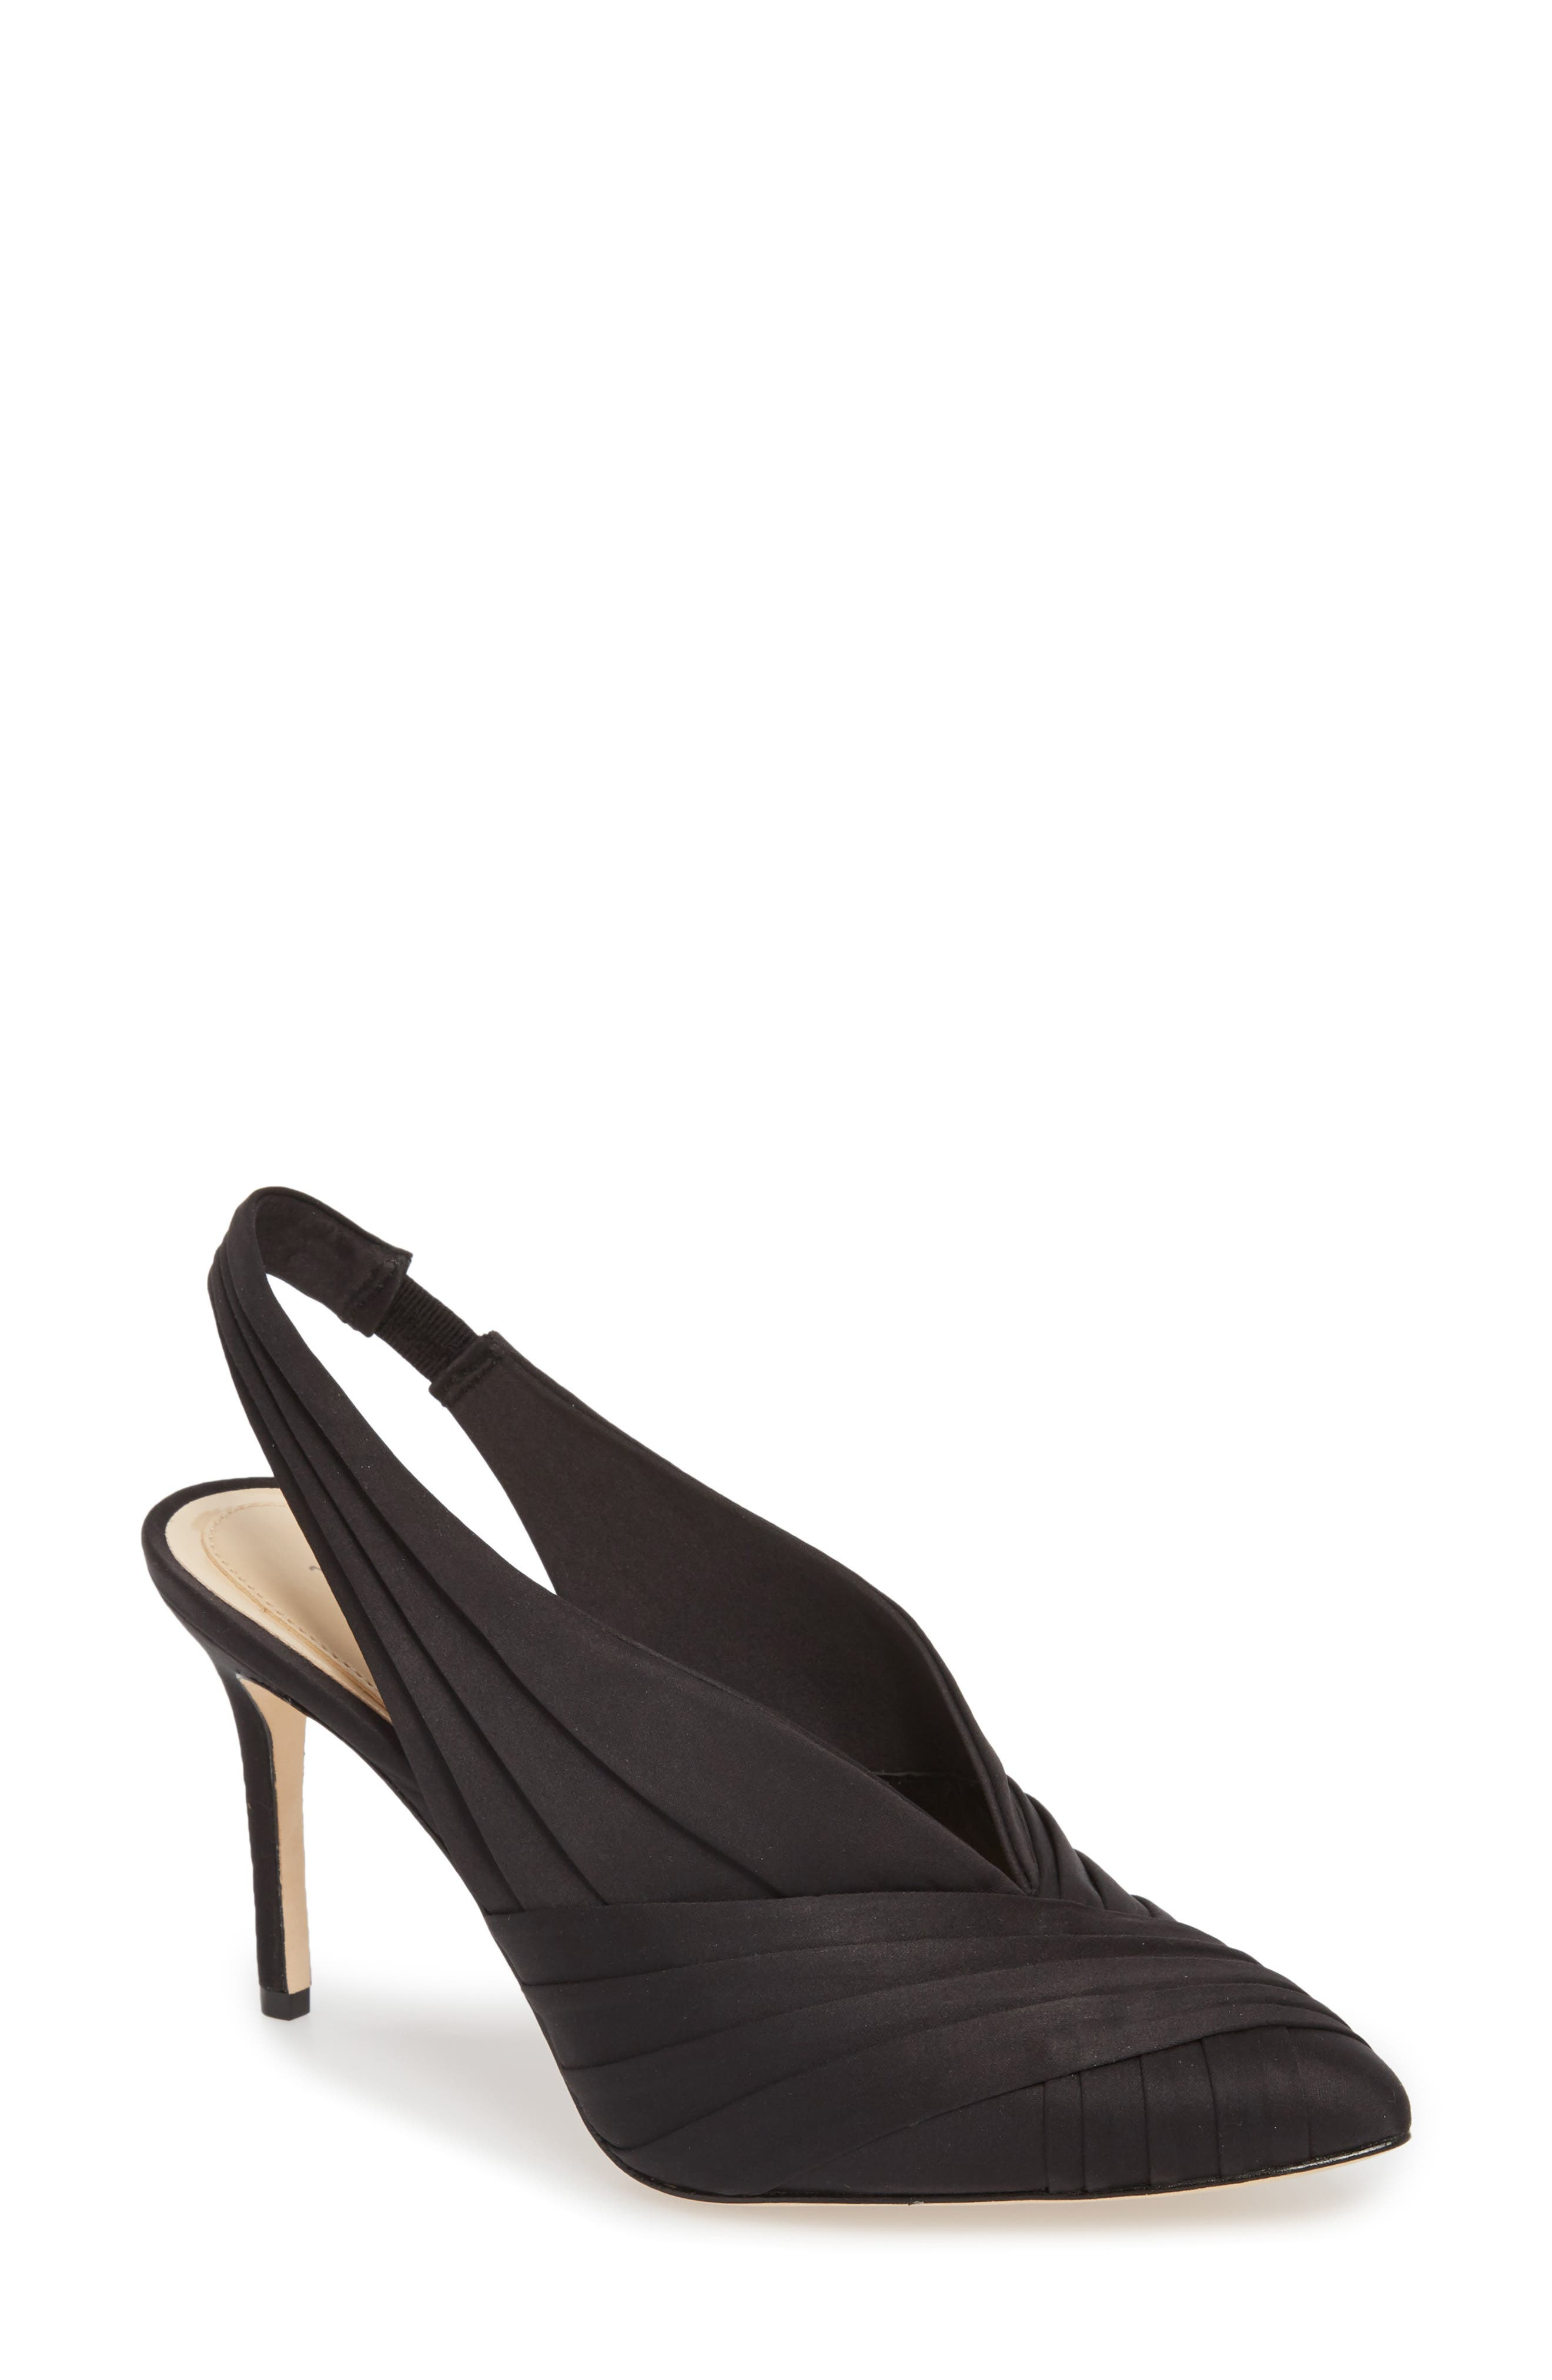 Melkia Pump,                             Main thumbnail 1, color,                             BLACK SATIN